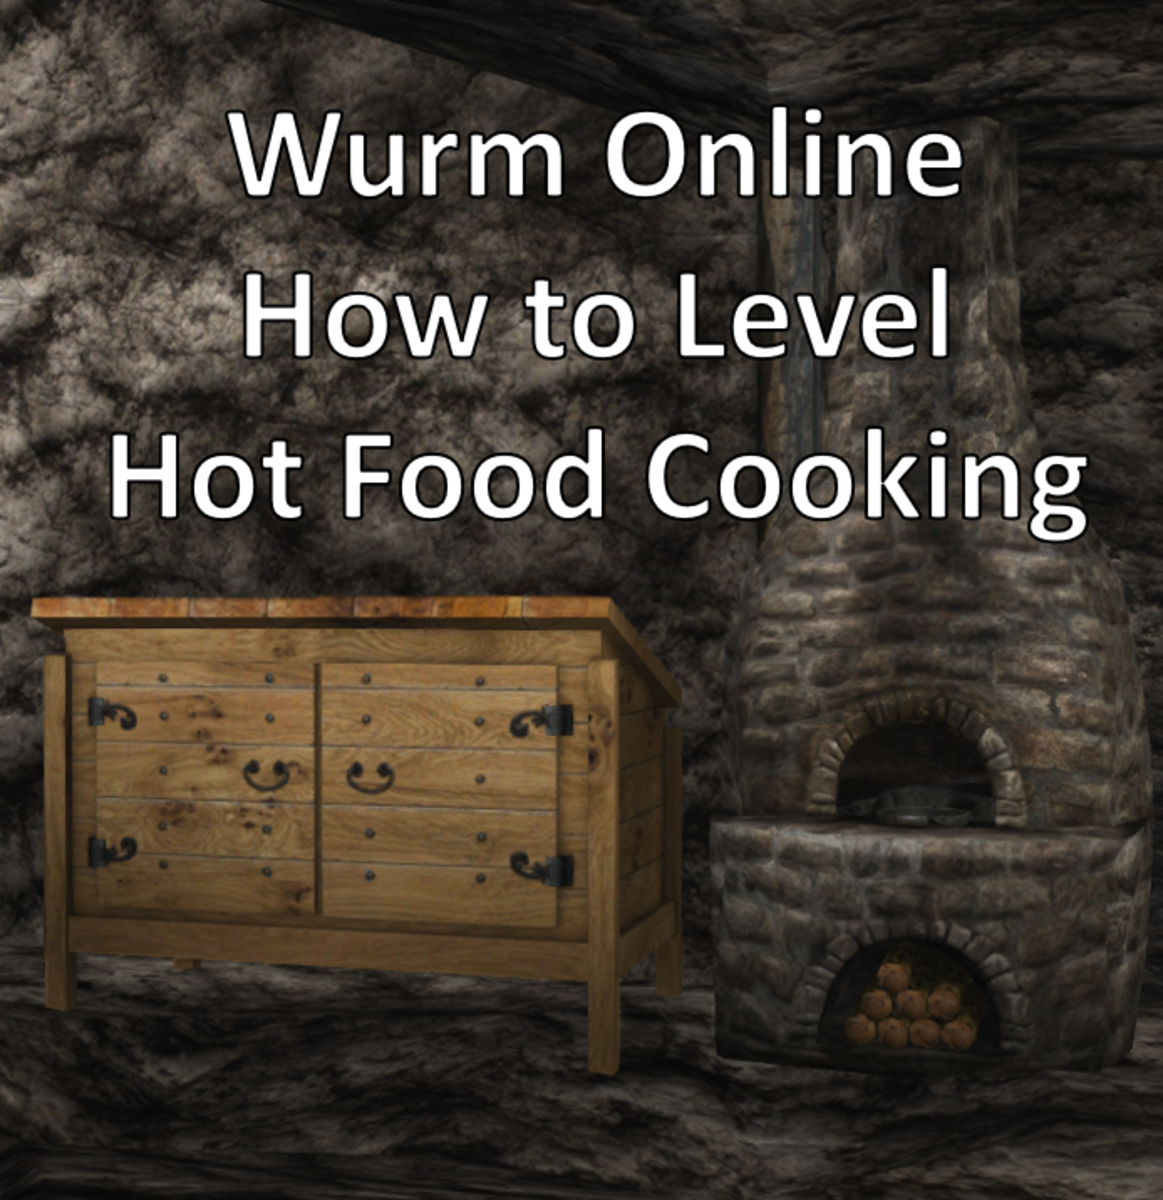 How to Level Hot Food Cooking in